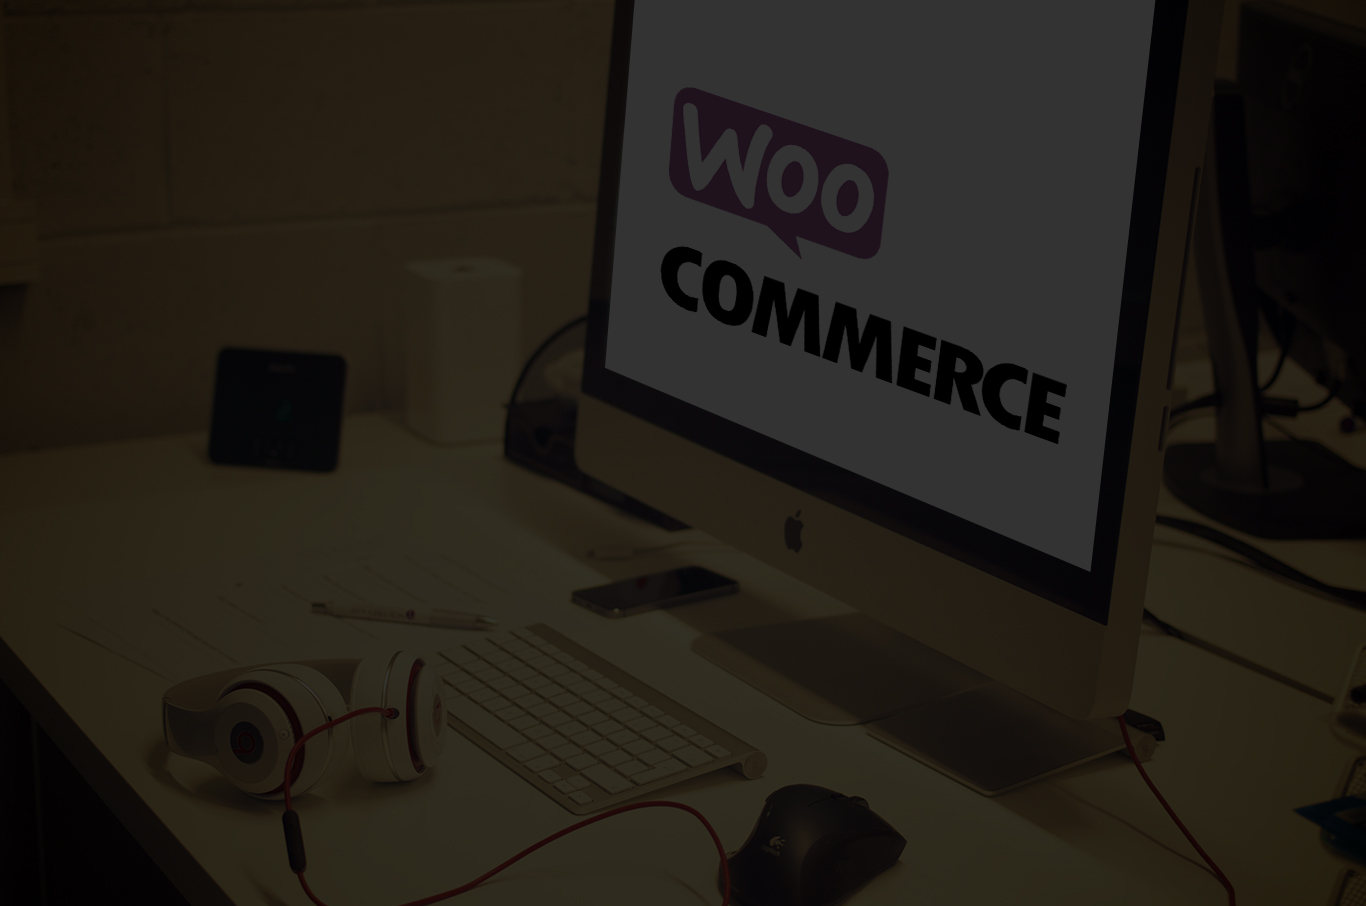 Store Banne Commerce Woocommerce Development Company Develop Your Ecommerce Store